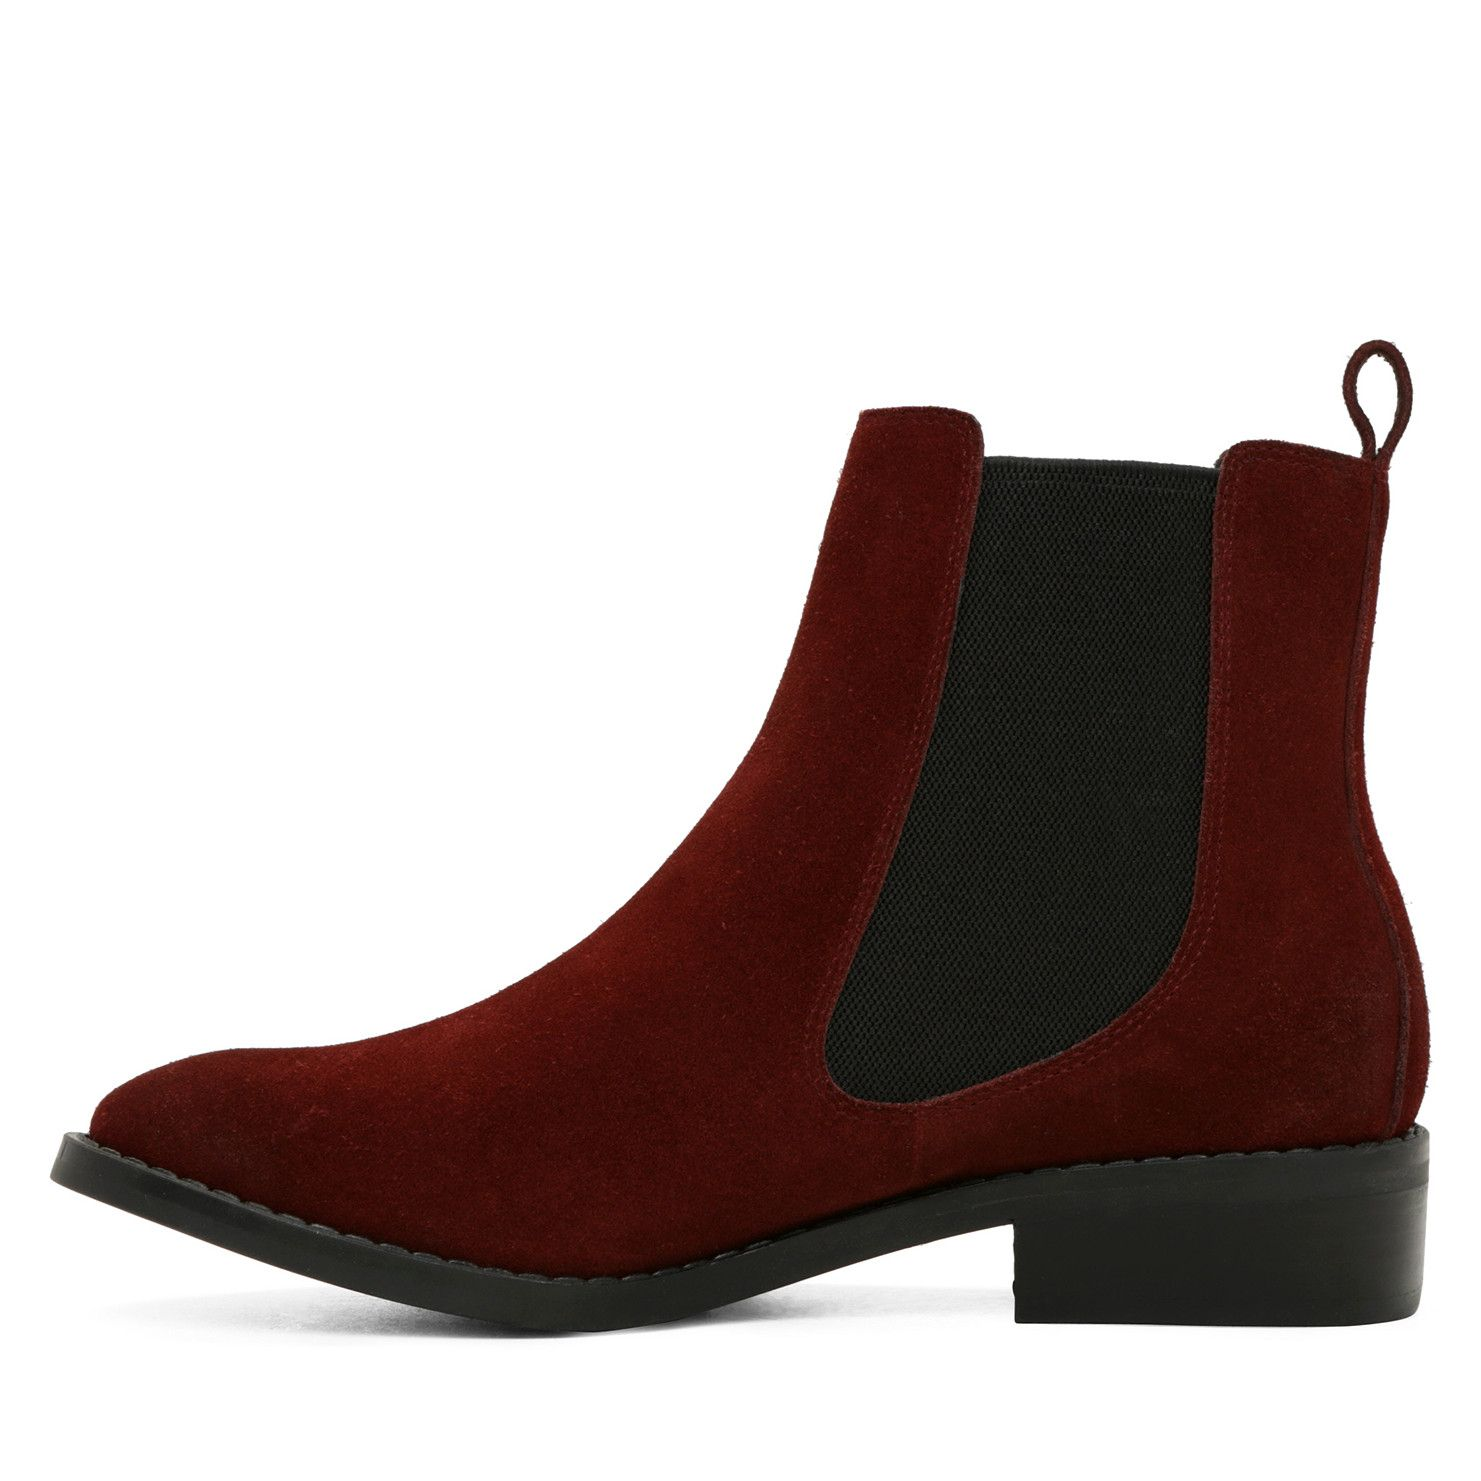 aldo shoes store brand fashion footwear locations wine images